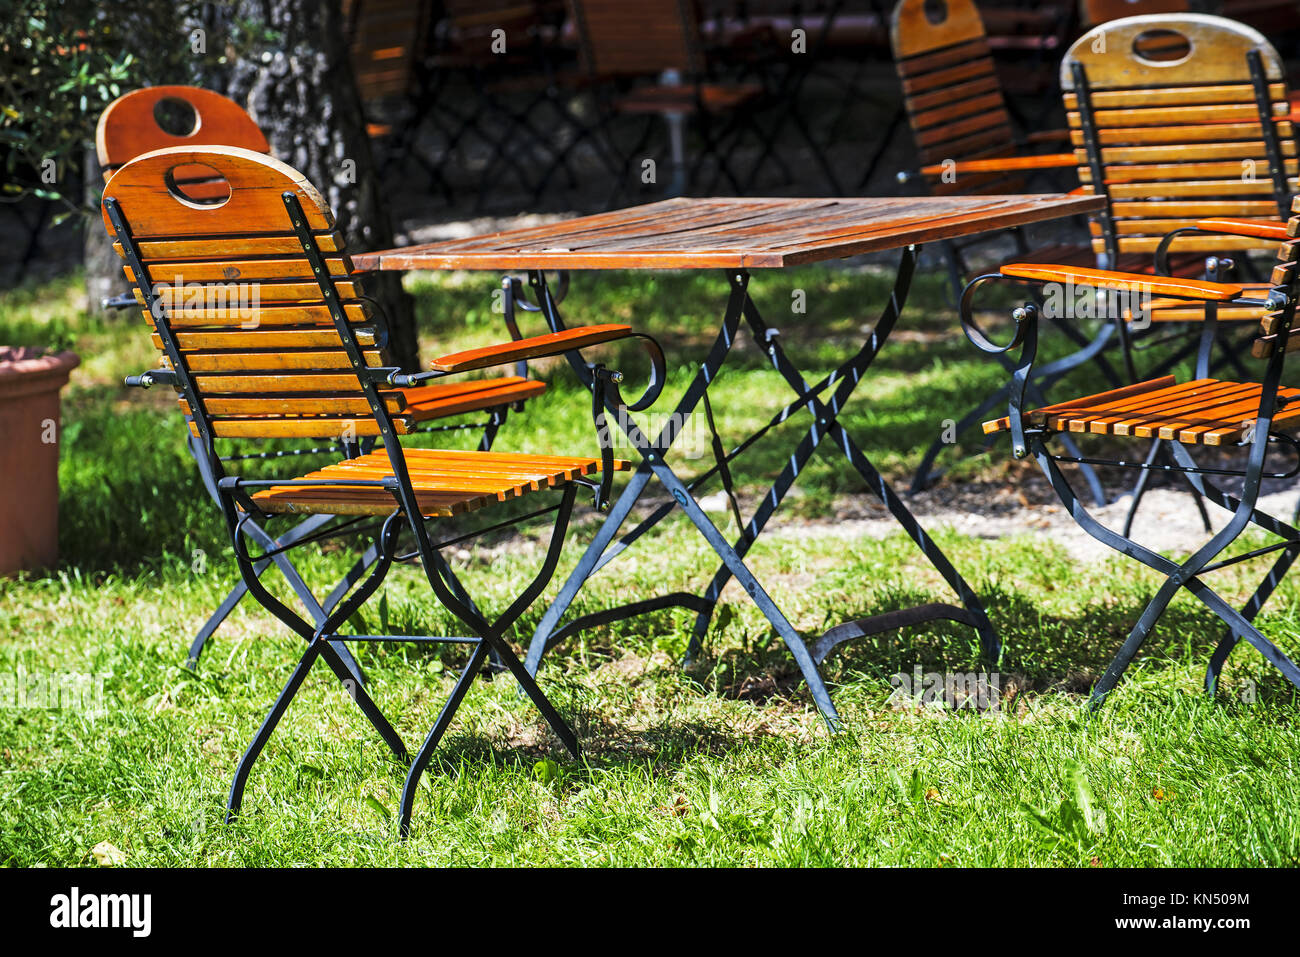 Garden Furniture Shop High Resolution Stock Photography And Images Alamy - Garden Furniture Clearance Tunbridge Wells